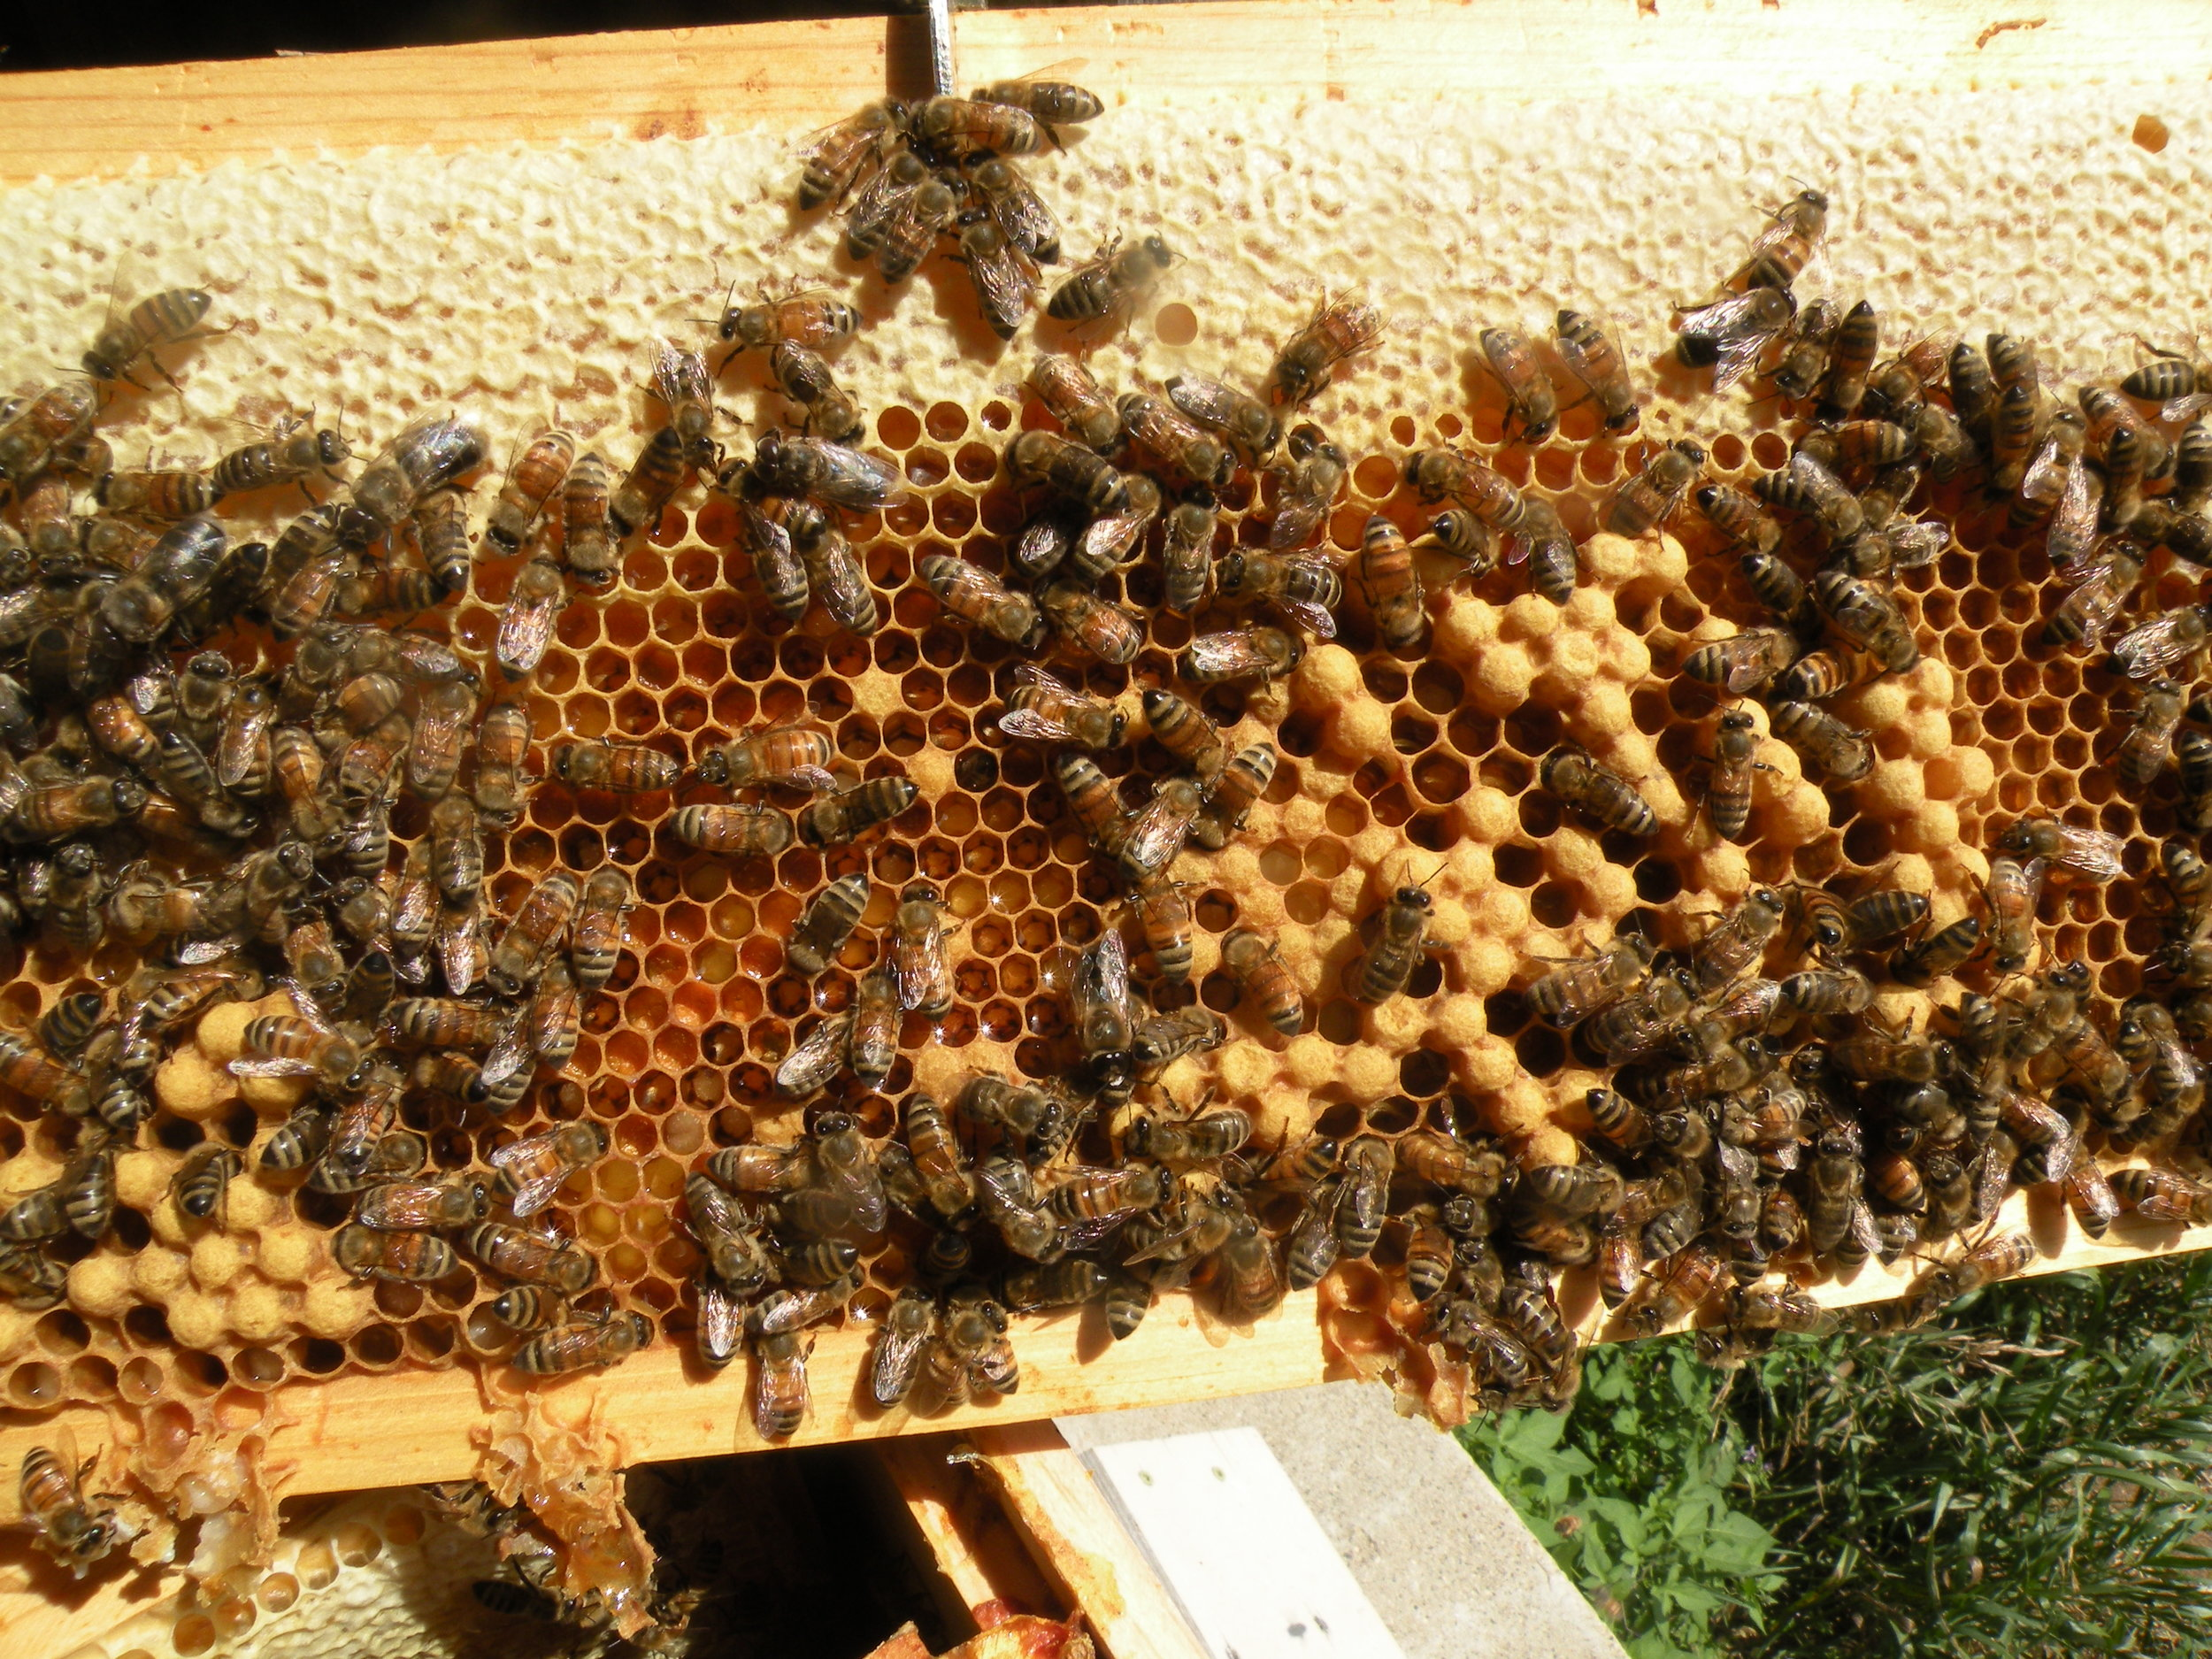 Typical brood laying pattern on beehive frame. Photo by Erin Schneider